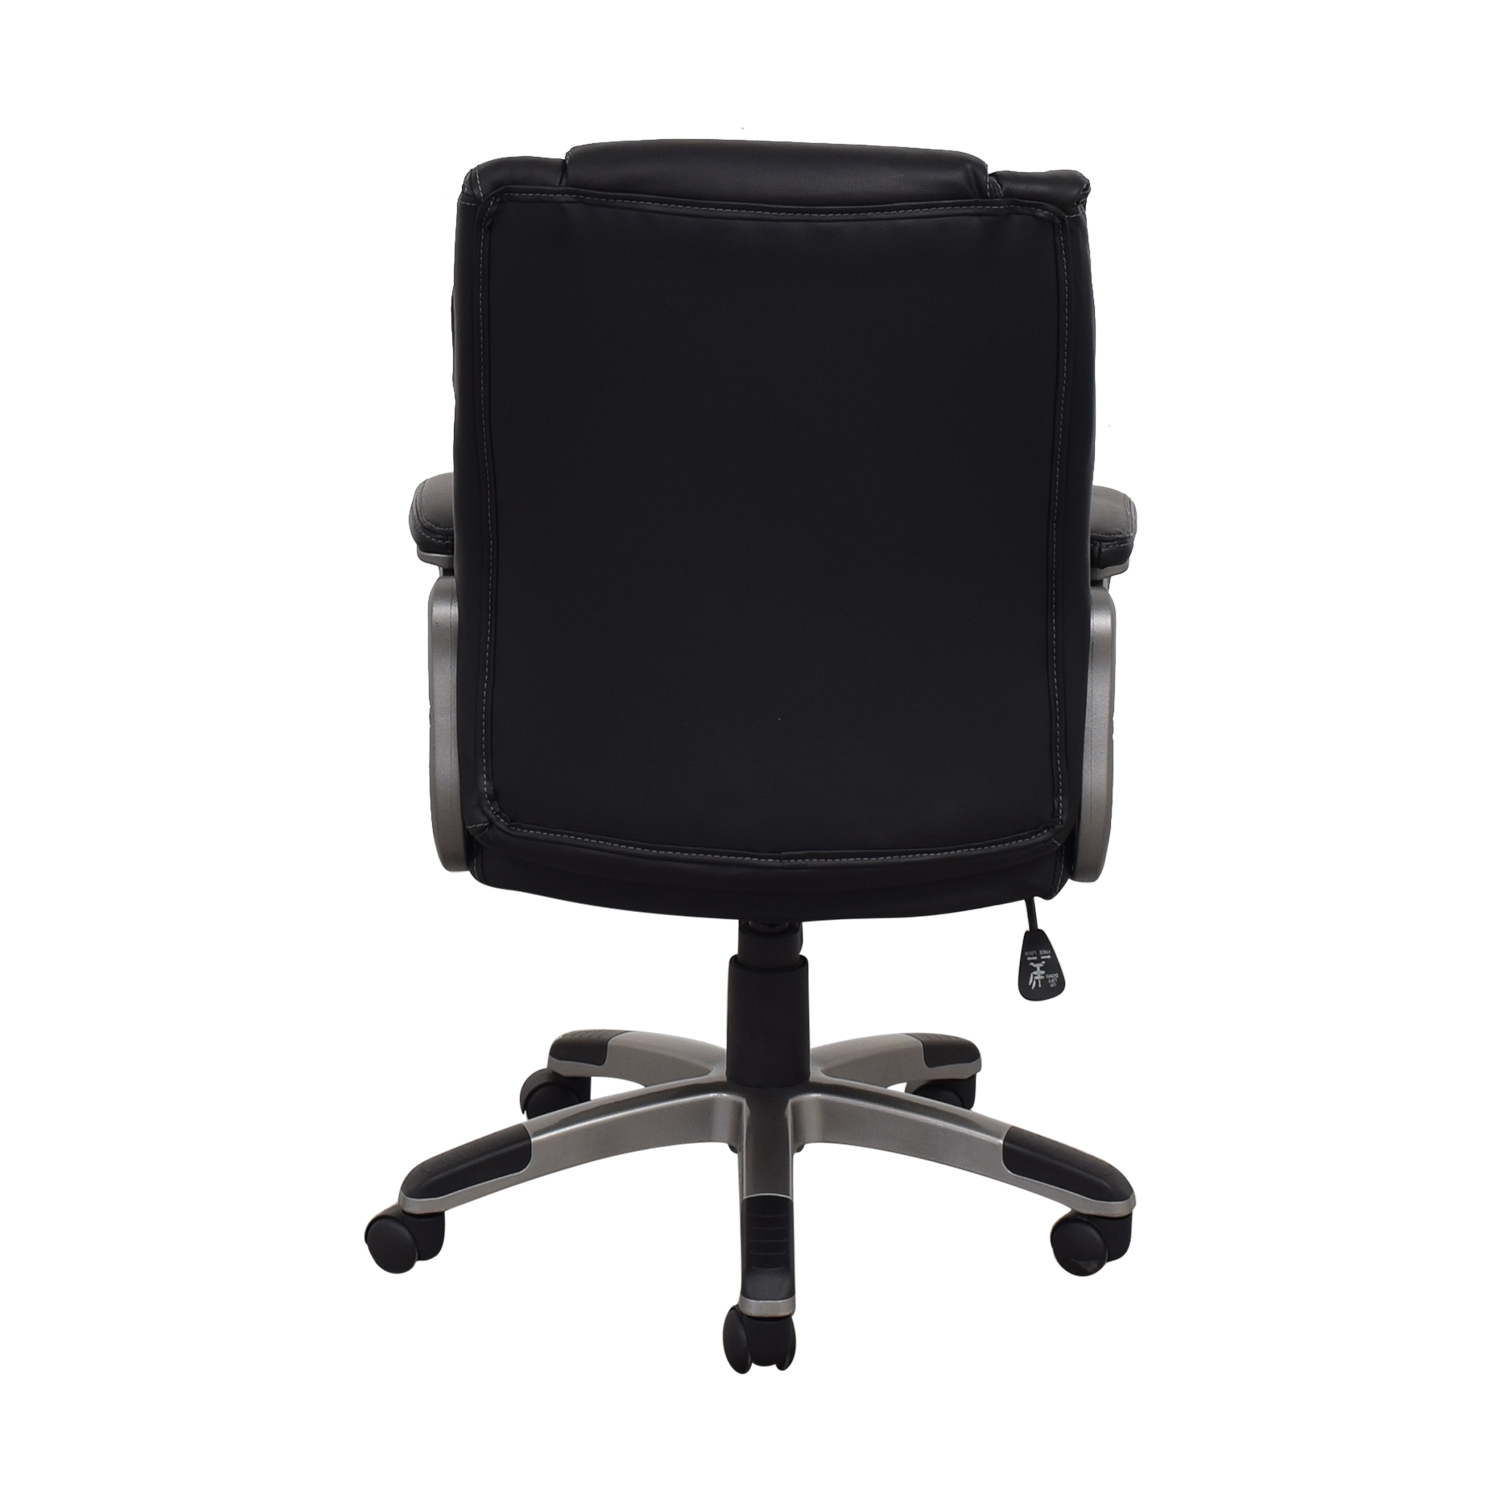 66 Off Office Depot Office Depot Home Office Chair Chairs